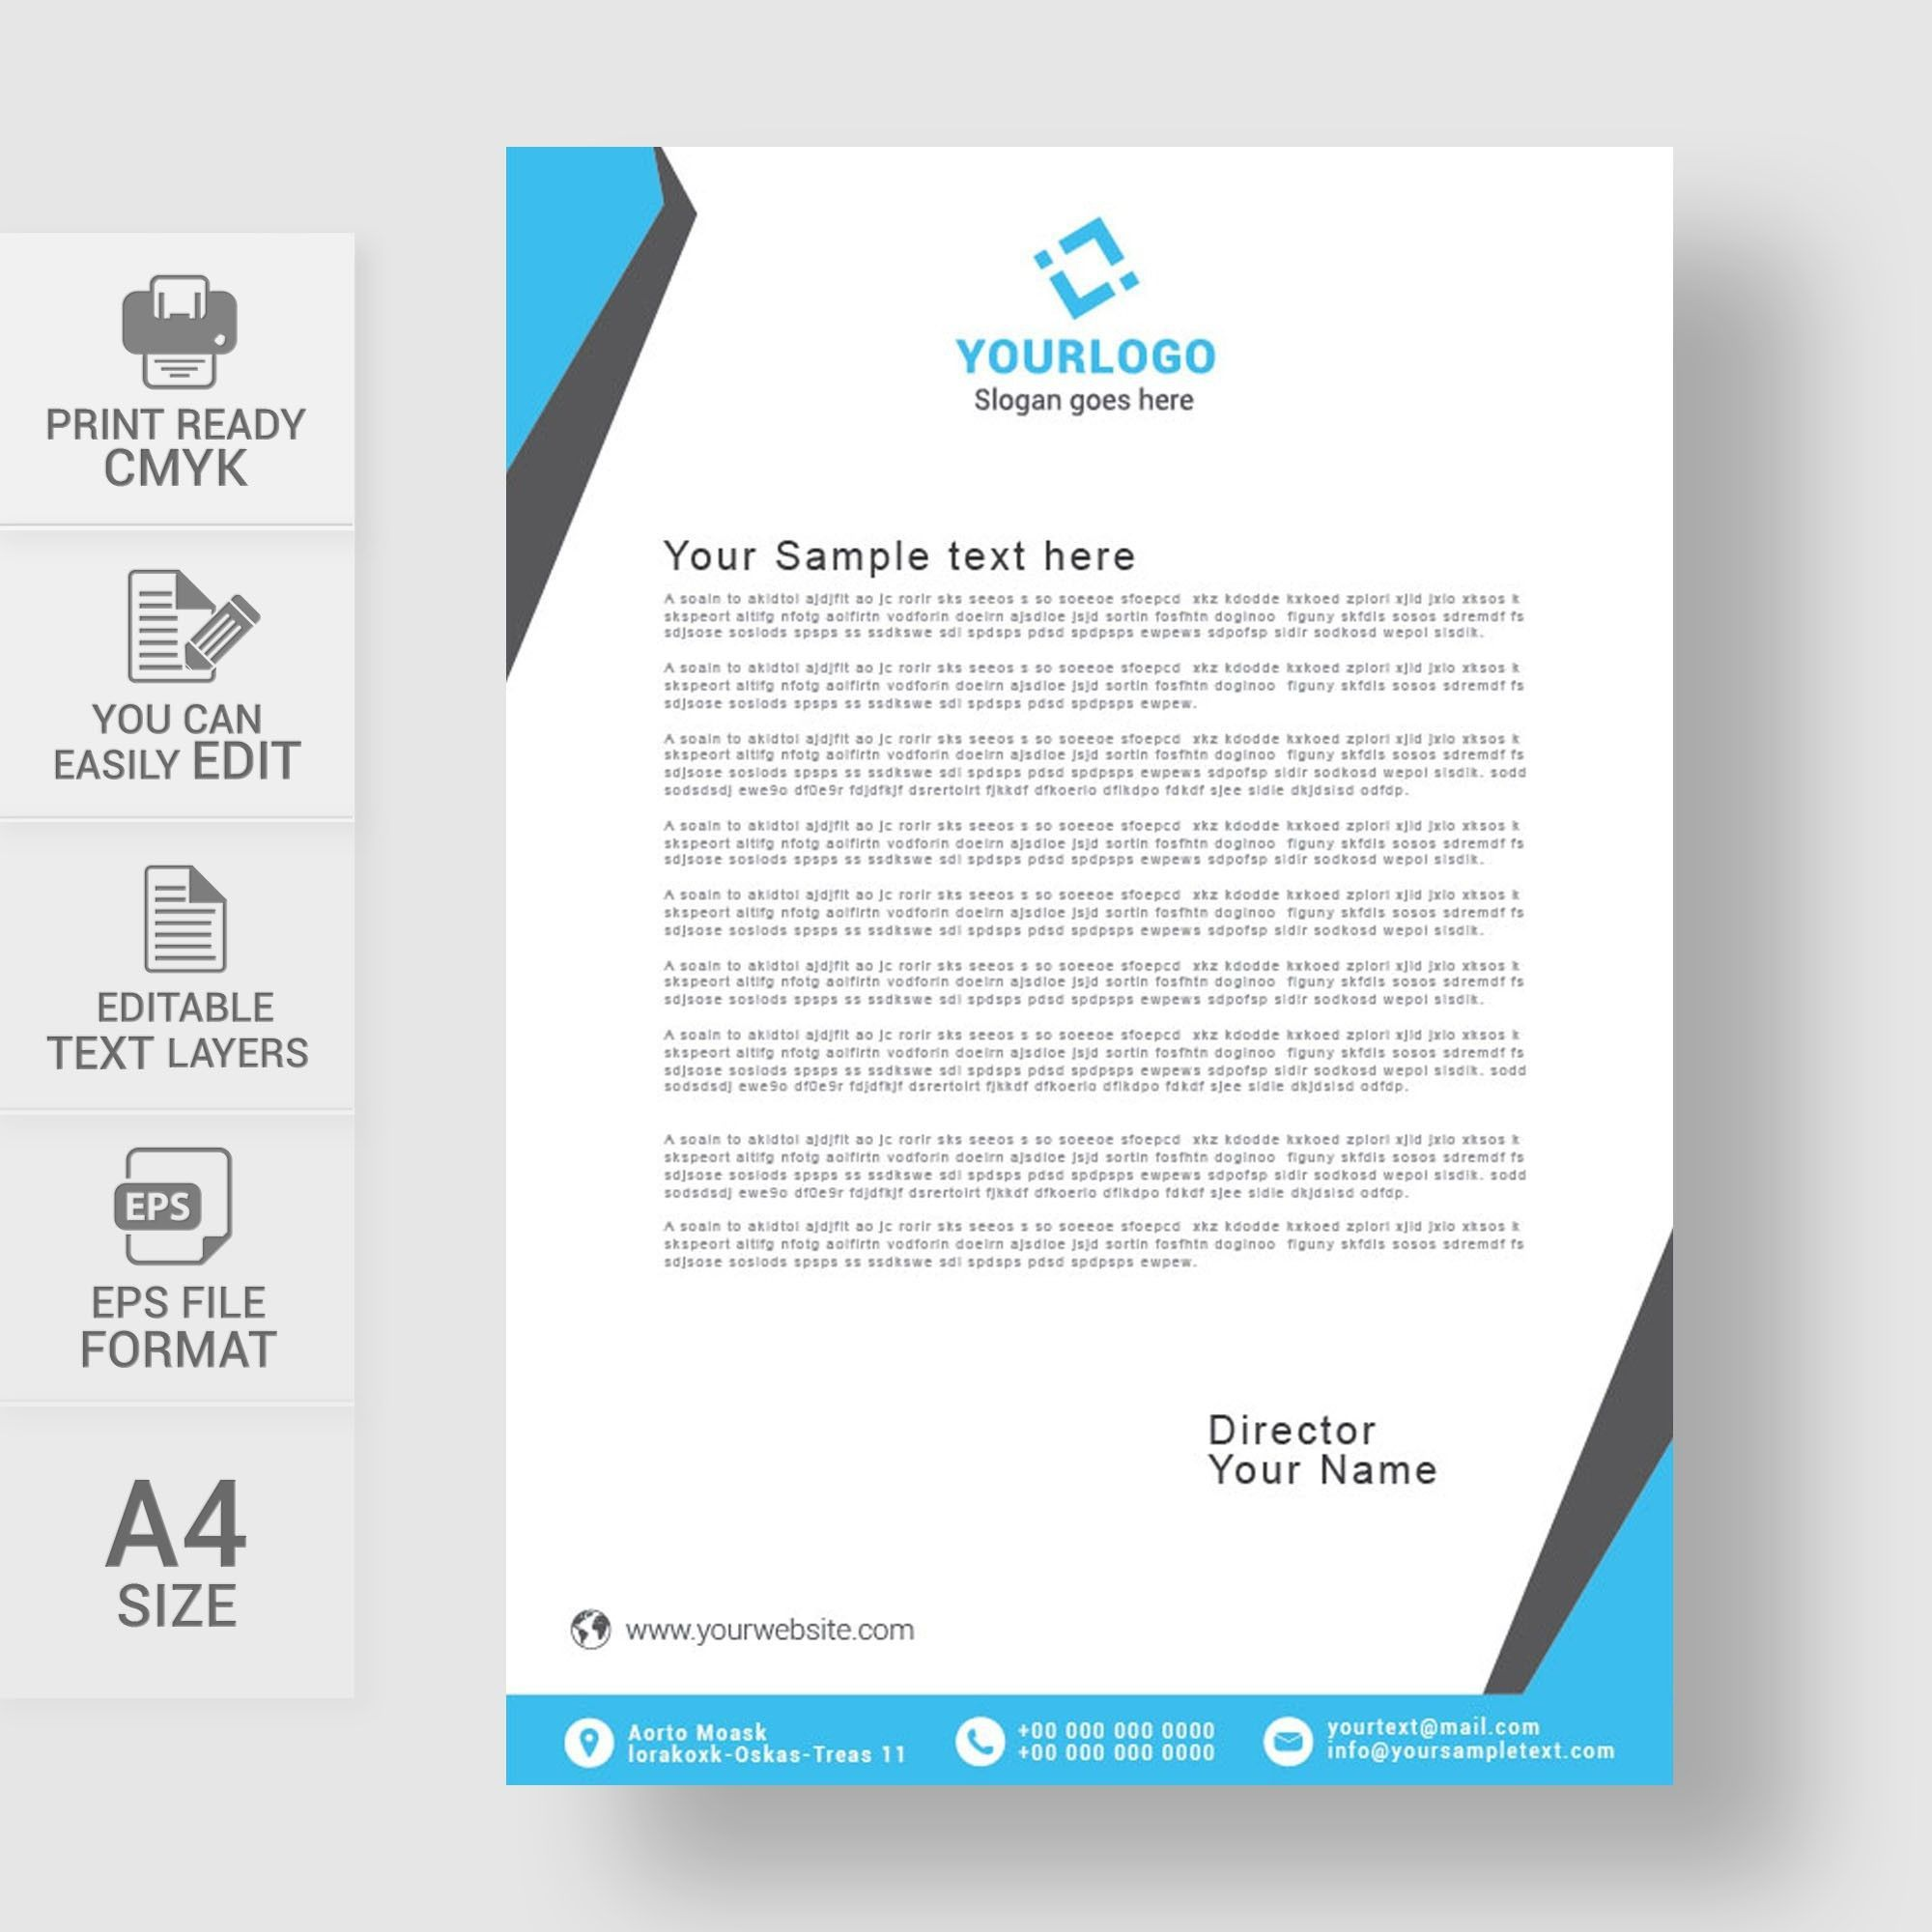 004 Excellent Letterhead Format In M Word Free Download High Resolution Full